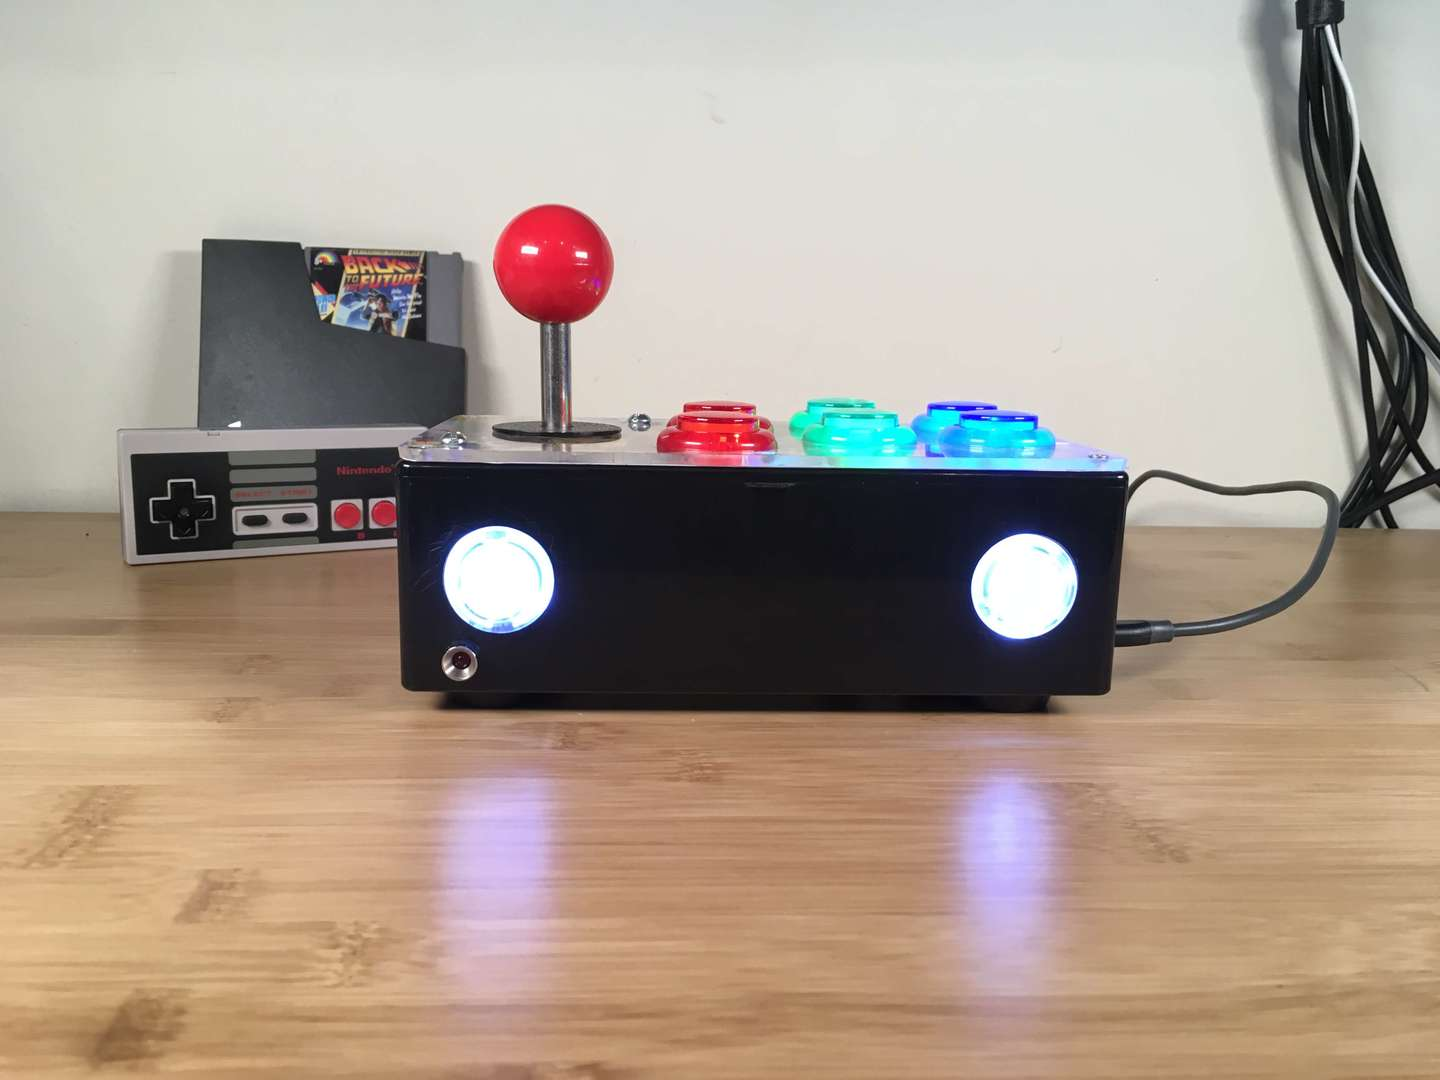 A Raspberry Pi DIY arcade joystick on a desk